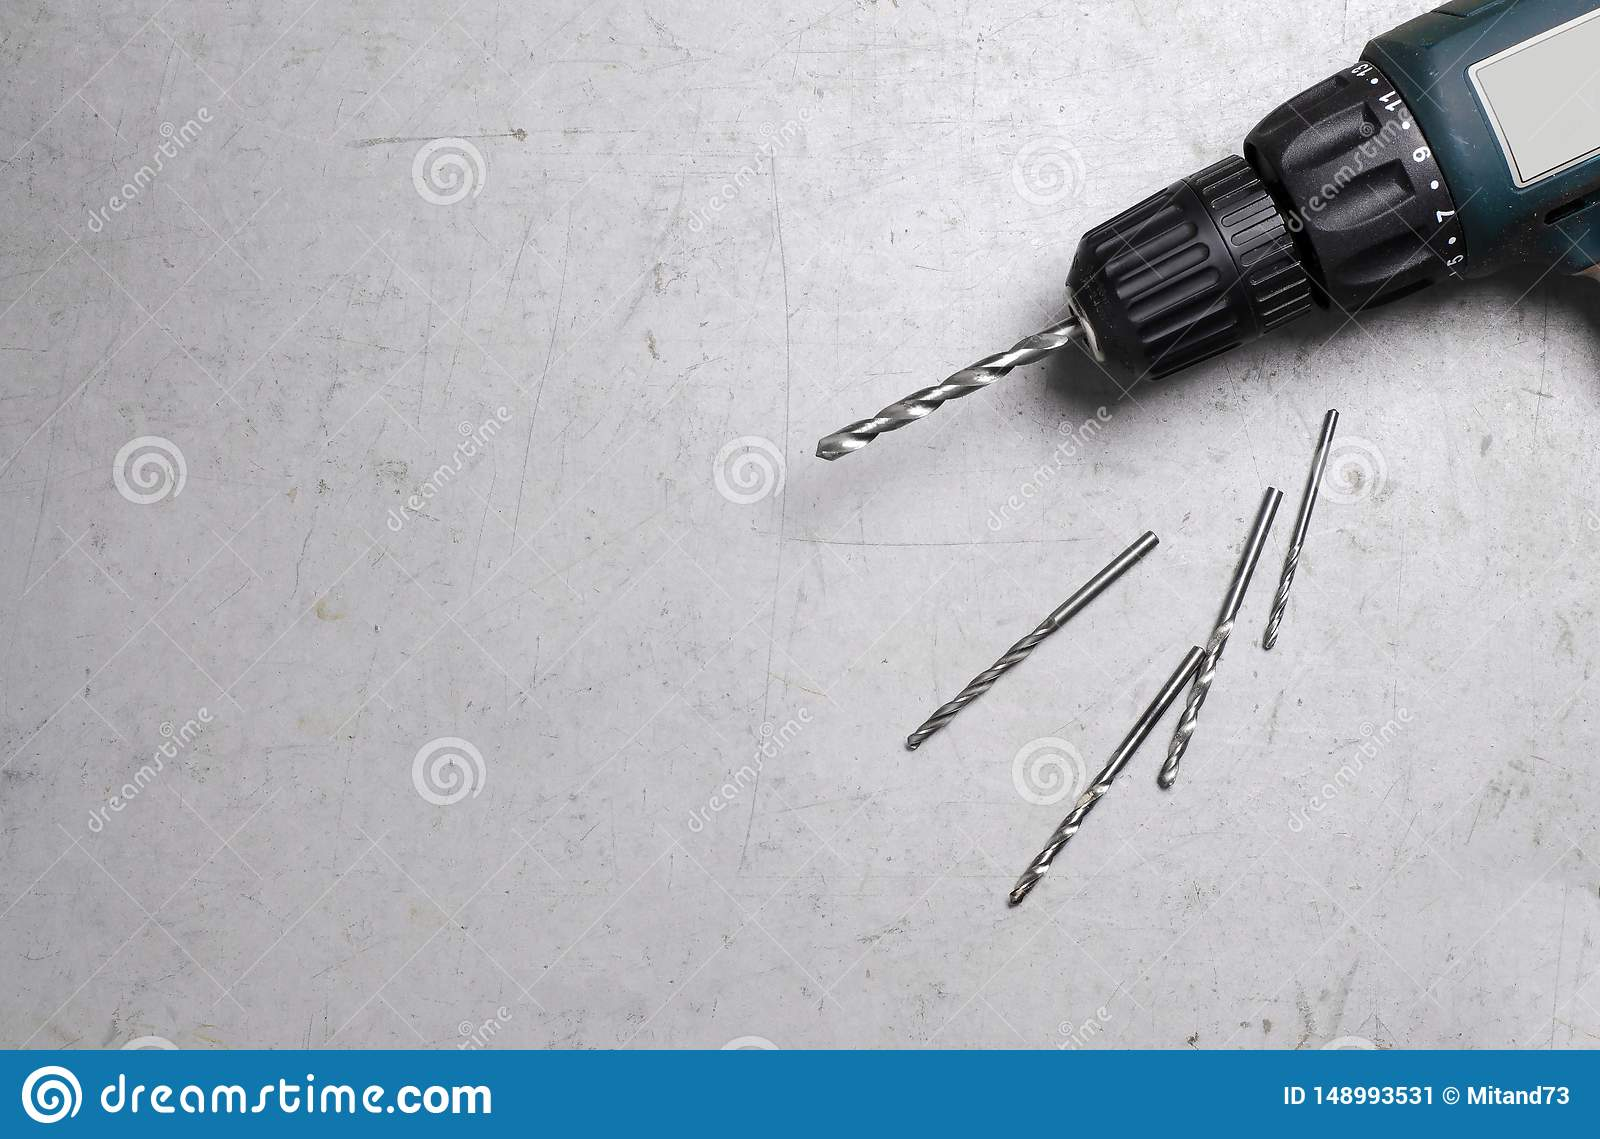 Electric drill on grey background. Space for text